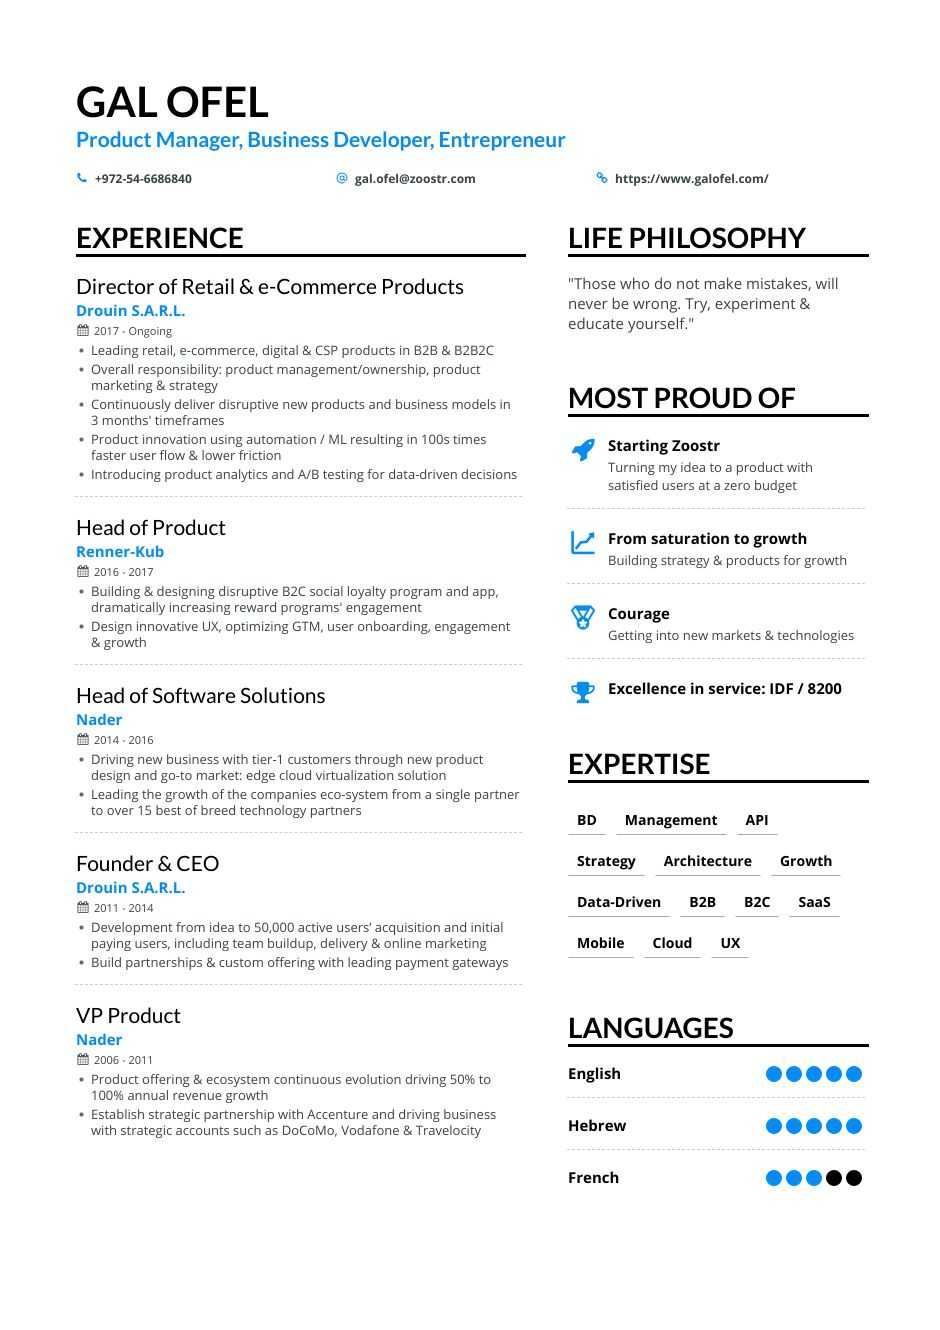 business development resume samples and writing guide for enhancv about yourself seo Resume About Yourself For Resume